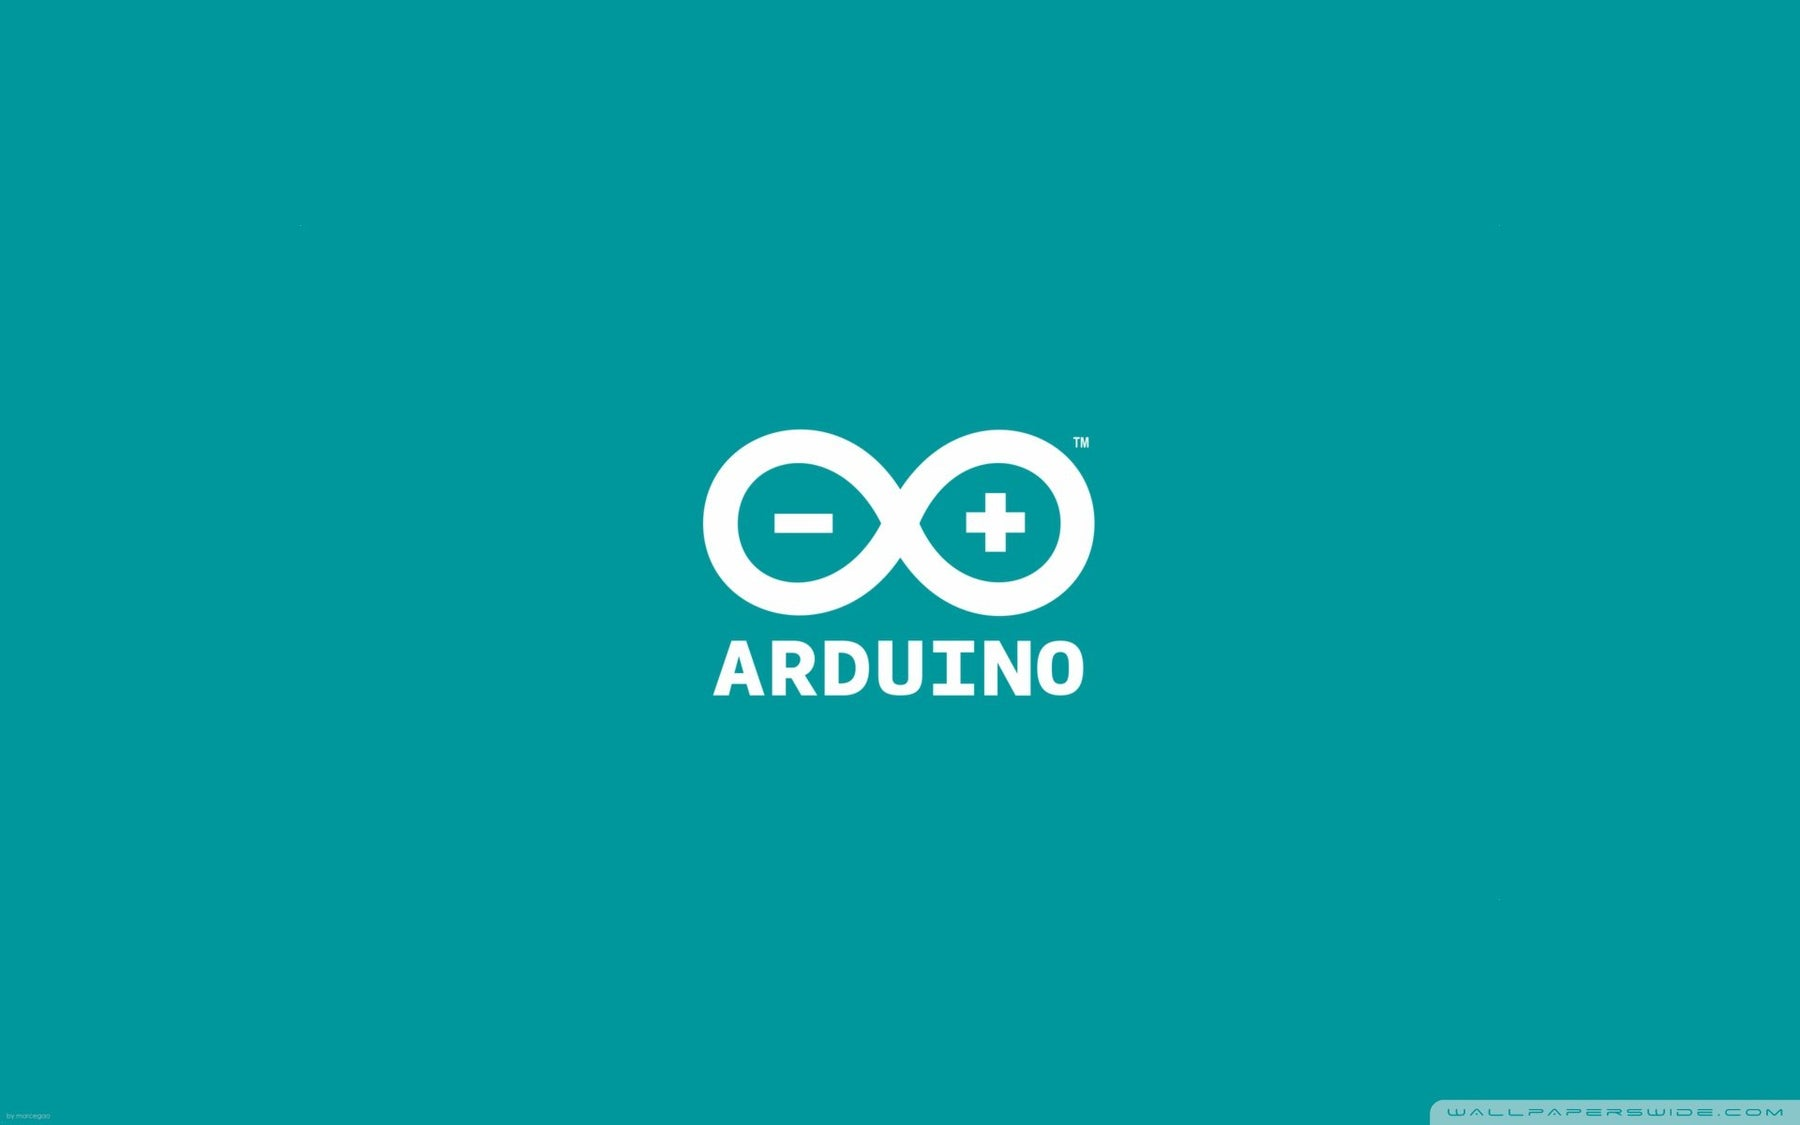 How to install libraries when using the Arduino IDE